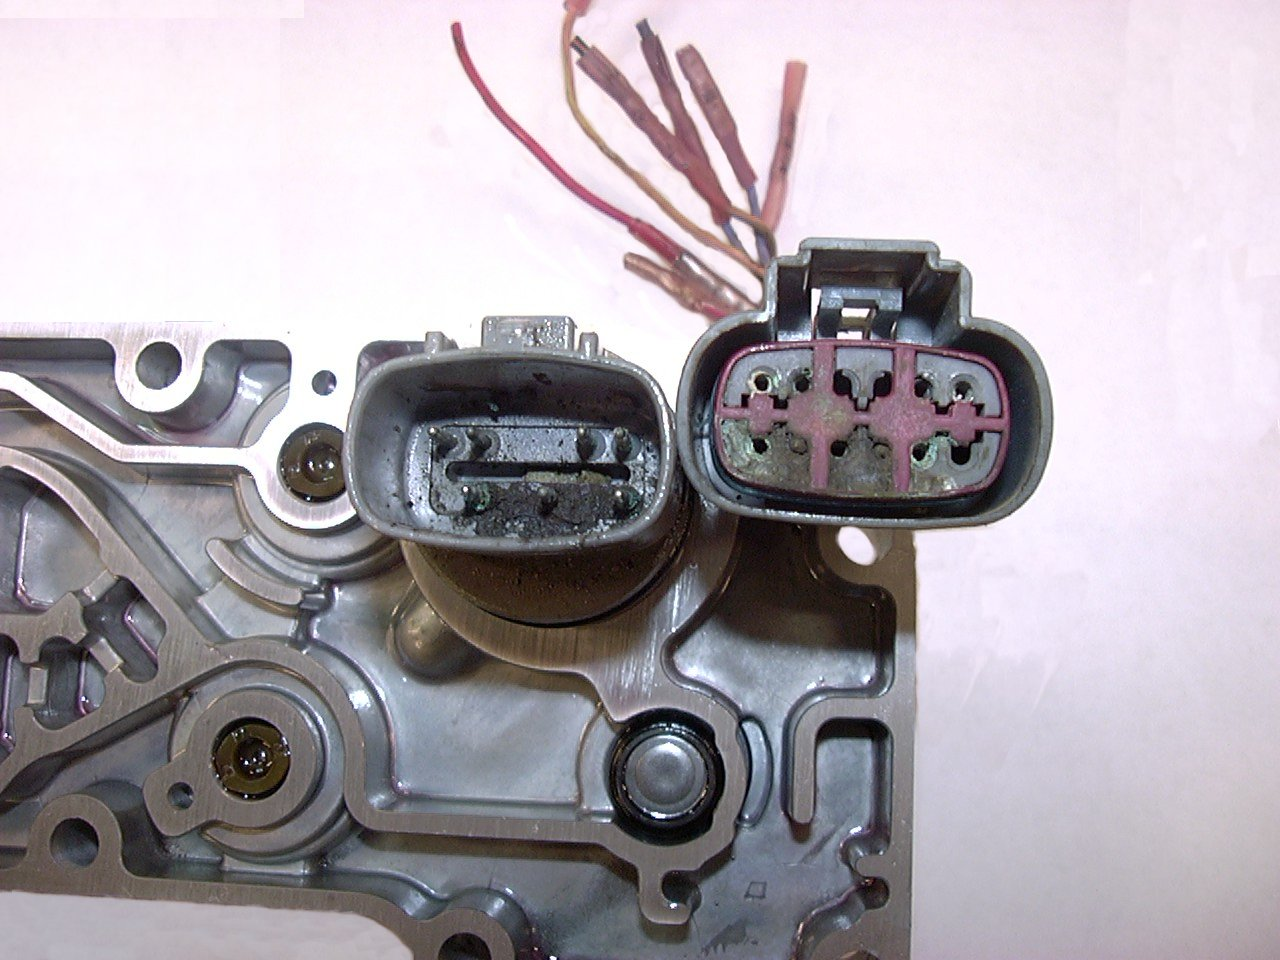 47re bad wiring harness causing governor pressure spikes